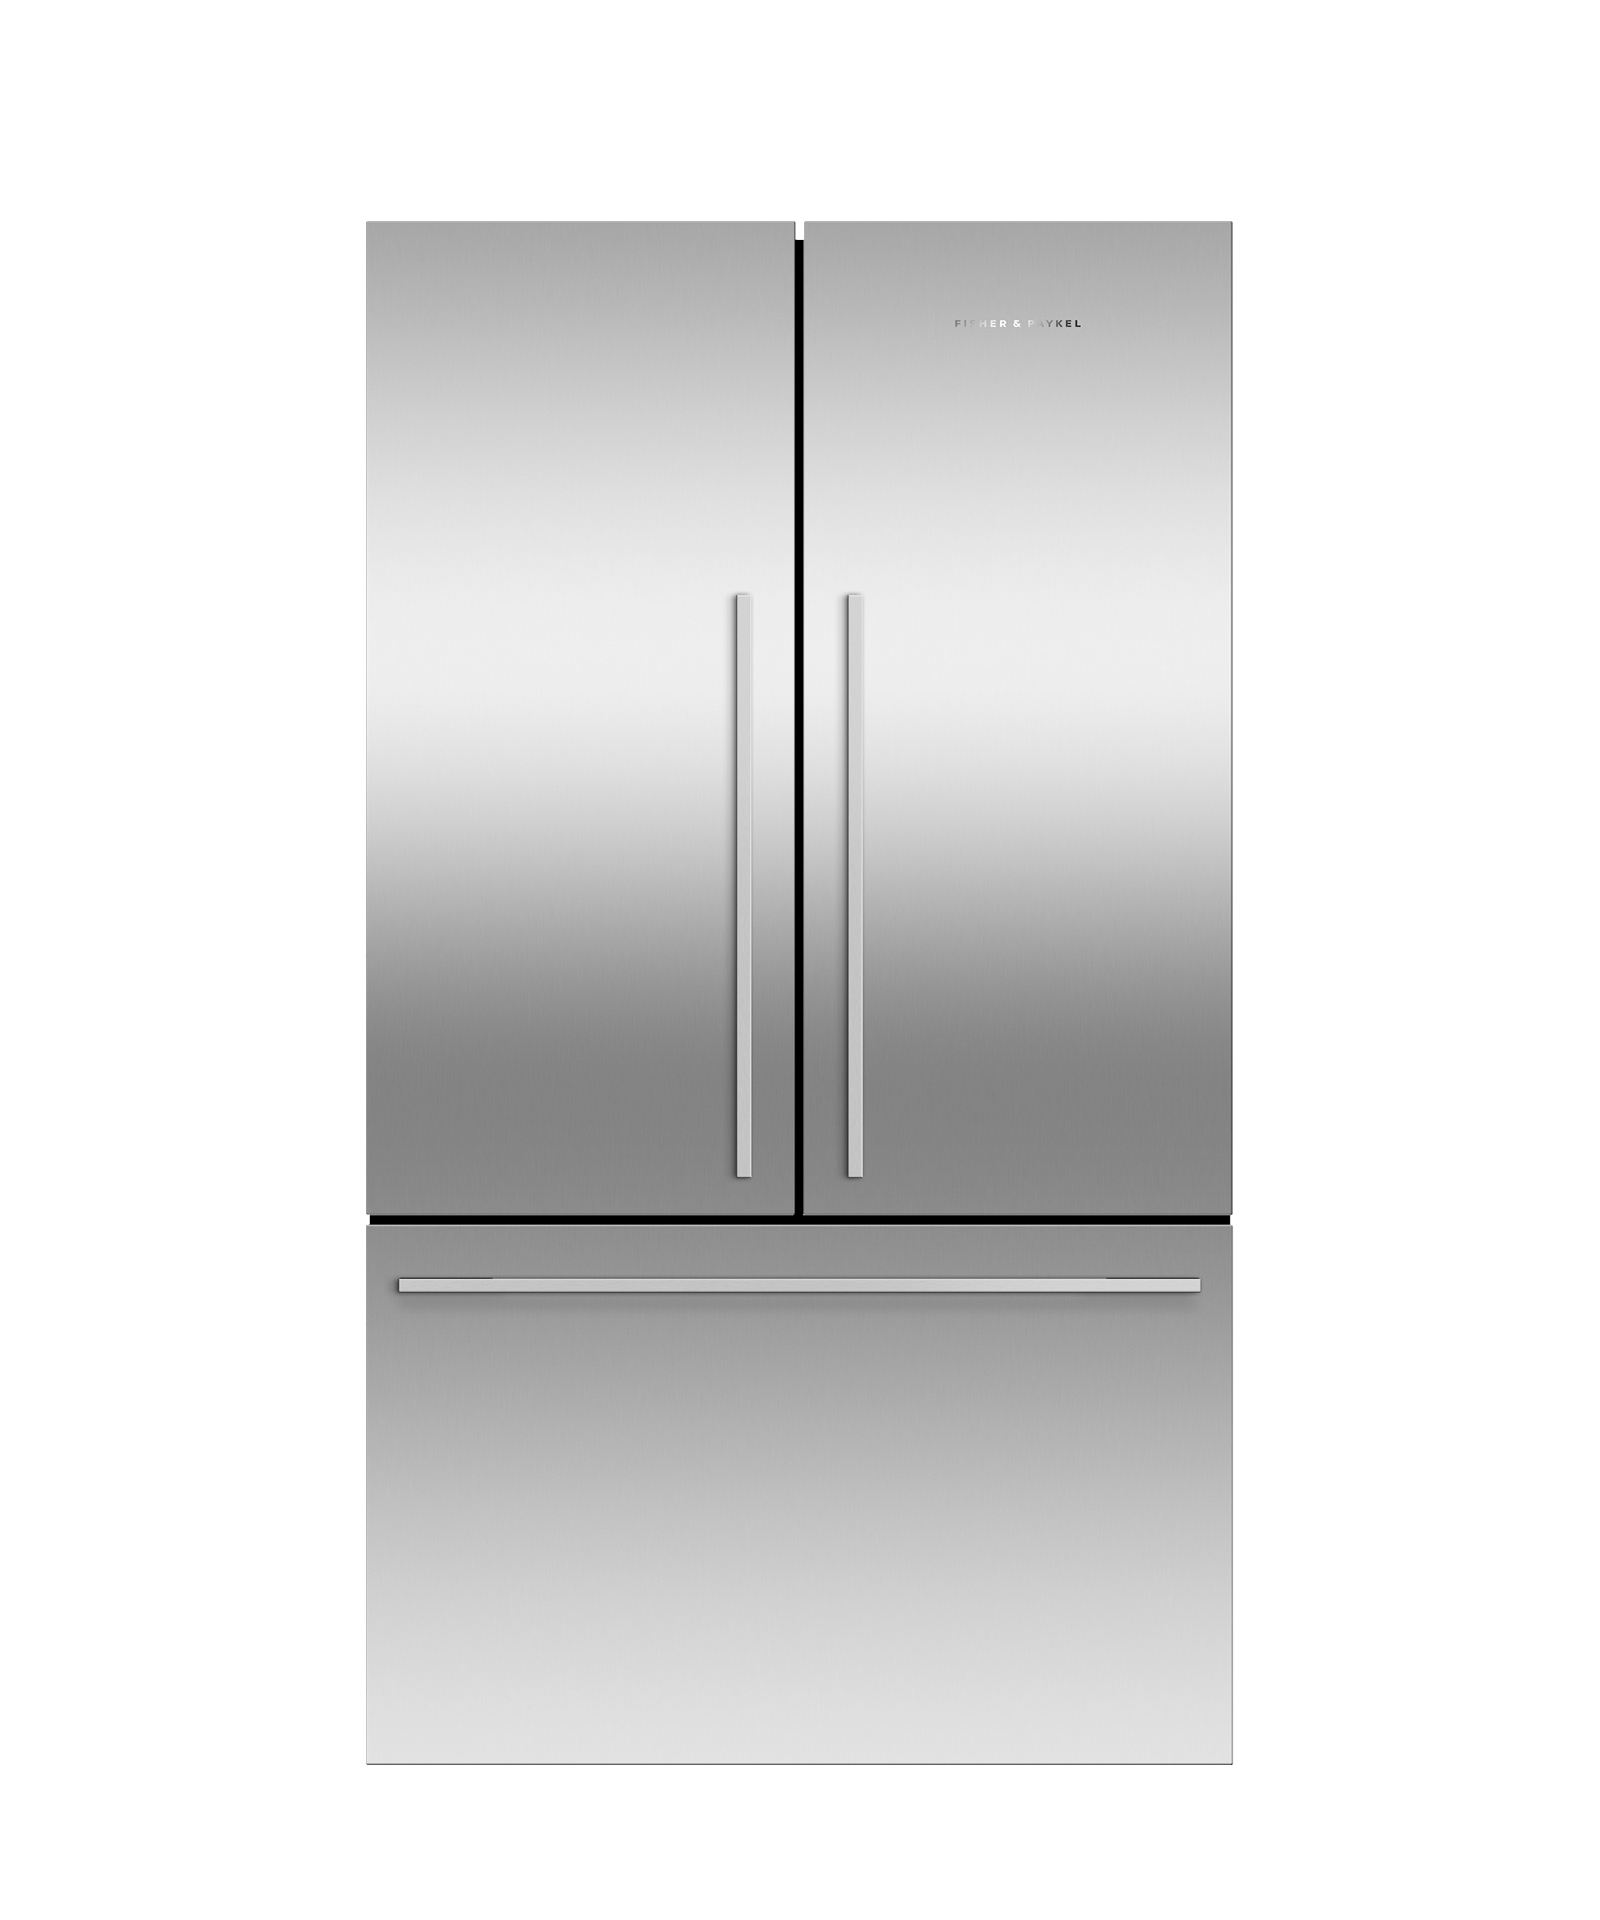 RF201ADX5 - ActiveSmart™ Refrigerator - 20.1 cu ft. counter depth French Door 36   sc 1 st  Fisher u0026 Paykel Appliances & RF201ADX5 - French Door Refrigerator 36